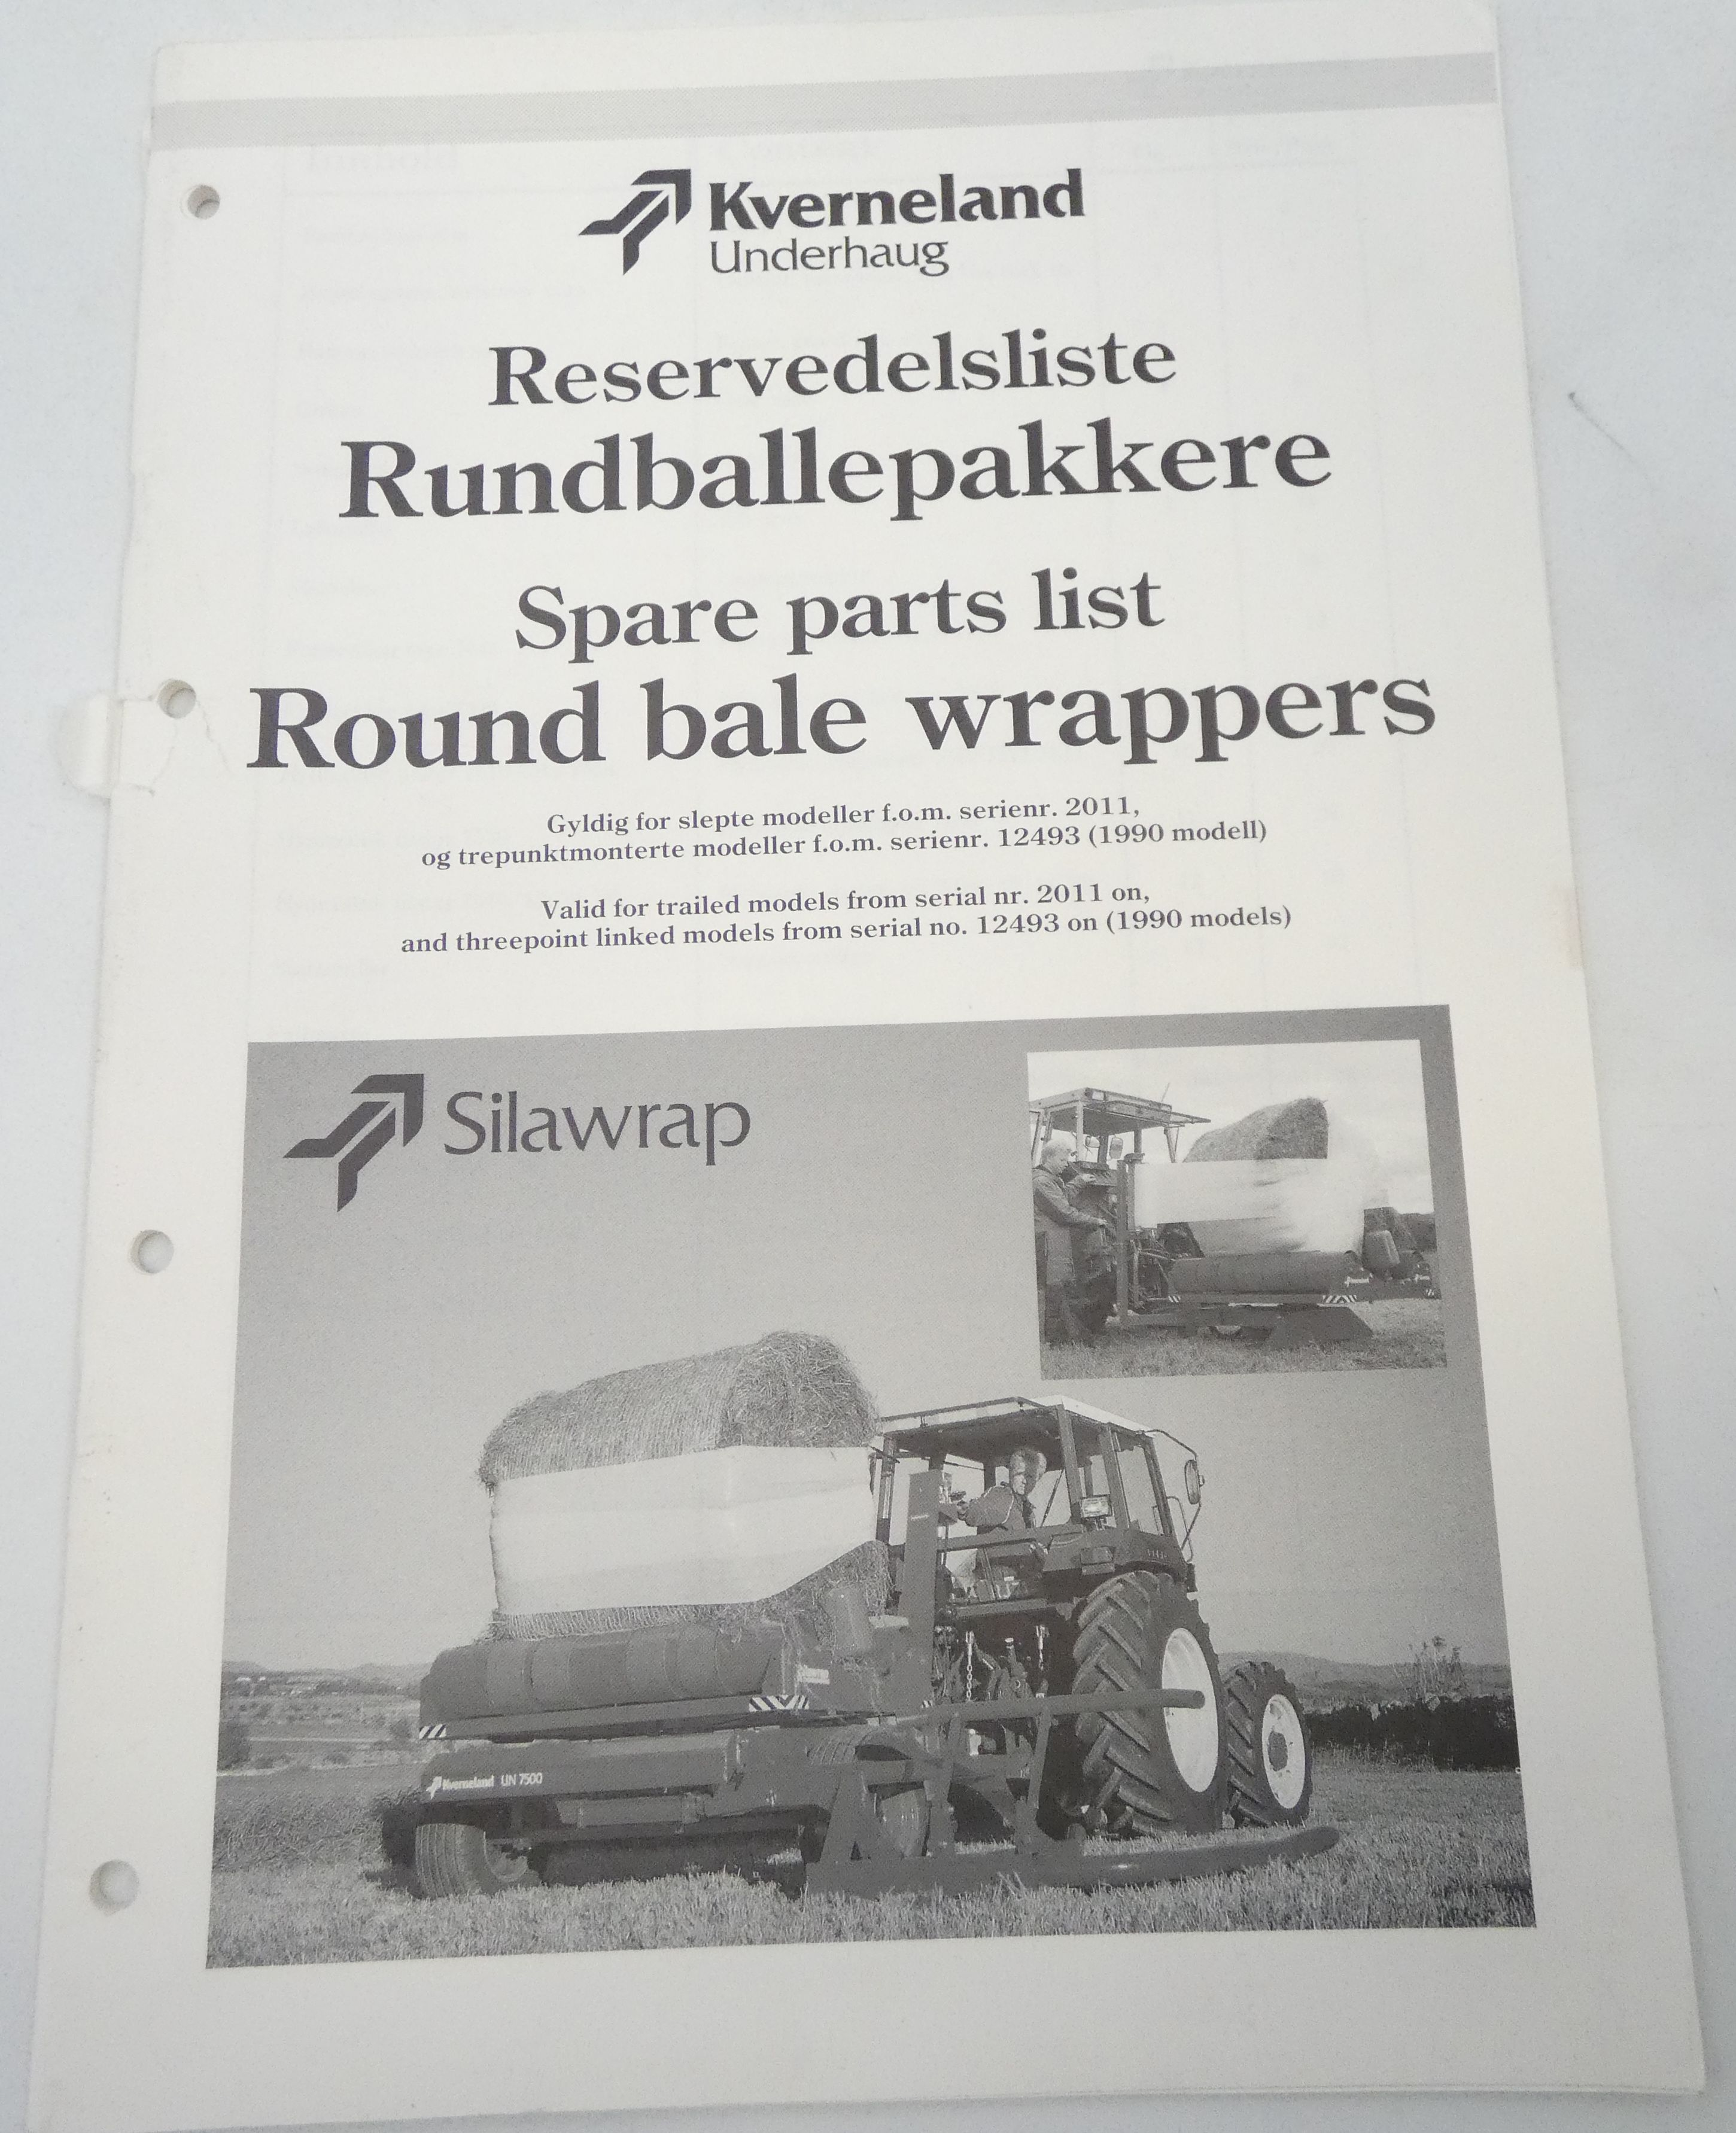 Kverneland round bale wrappers spare parts list